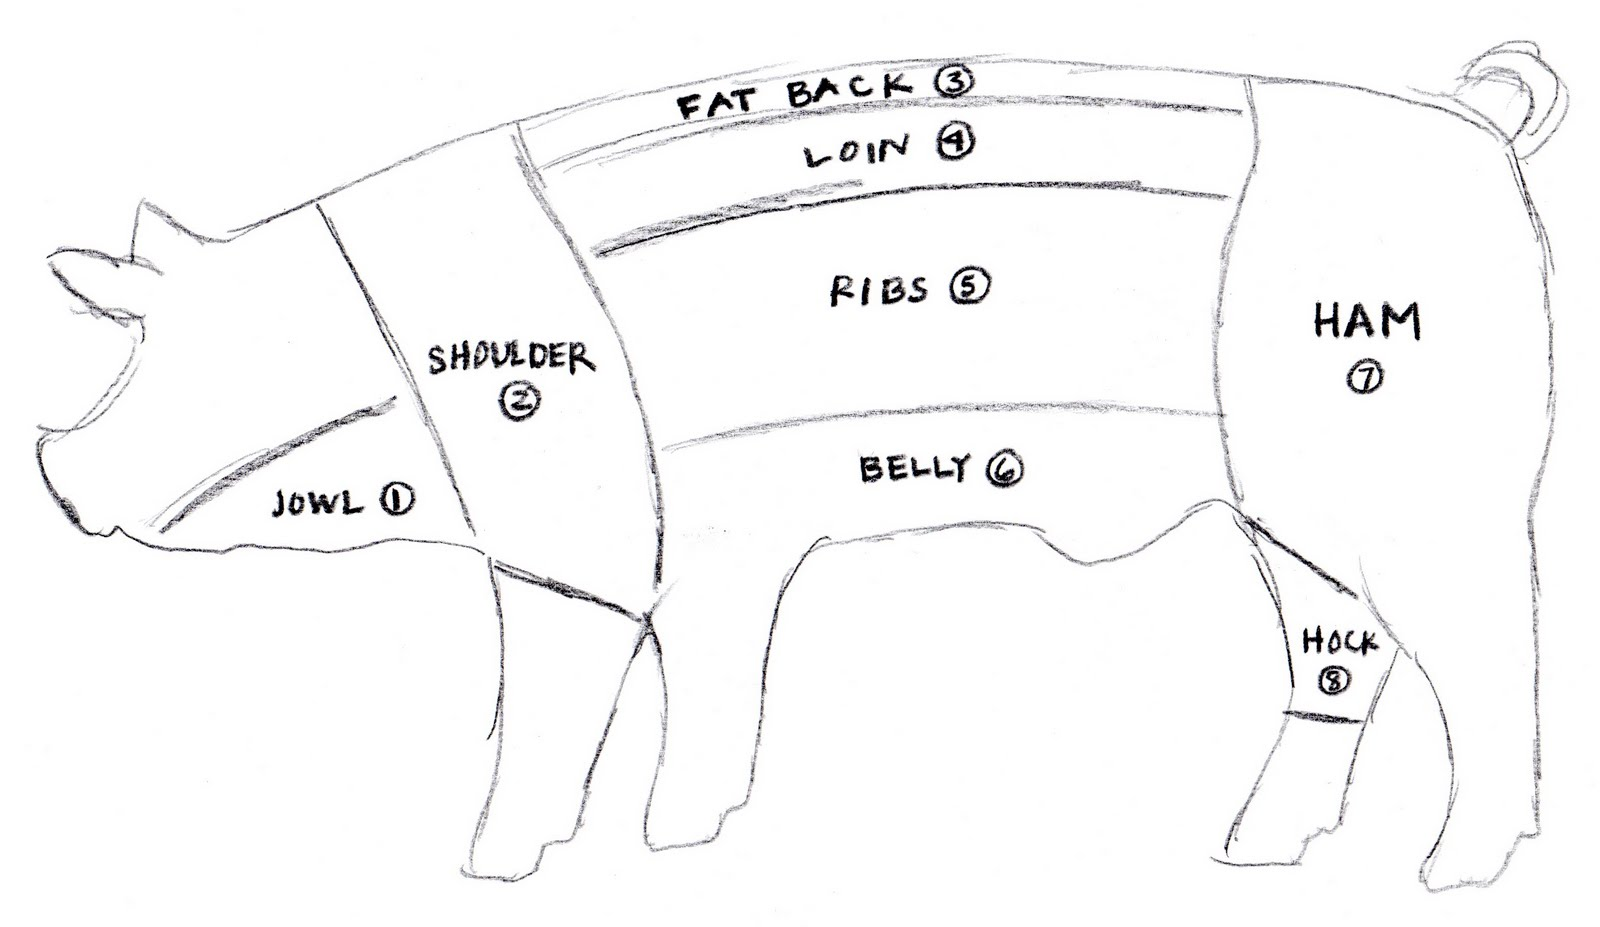 diary of a locavore the local food report on pig rh diaryofalocavore com pig body parts diagram